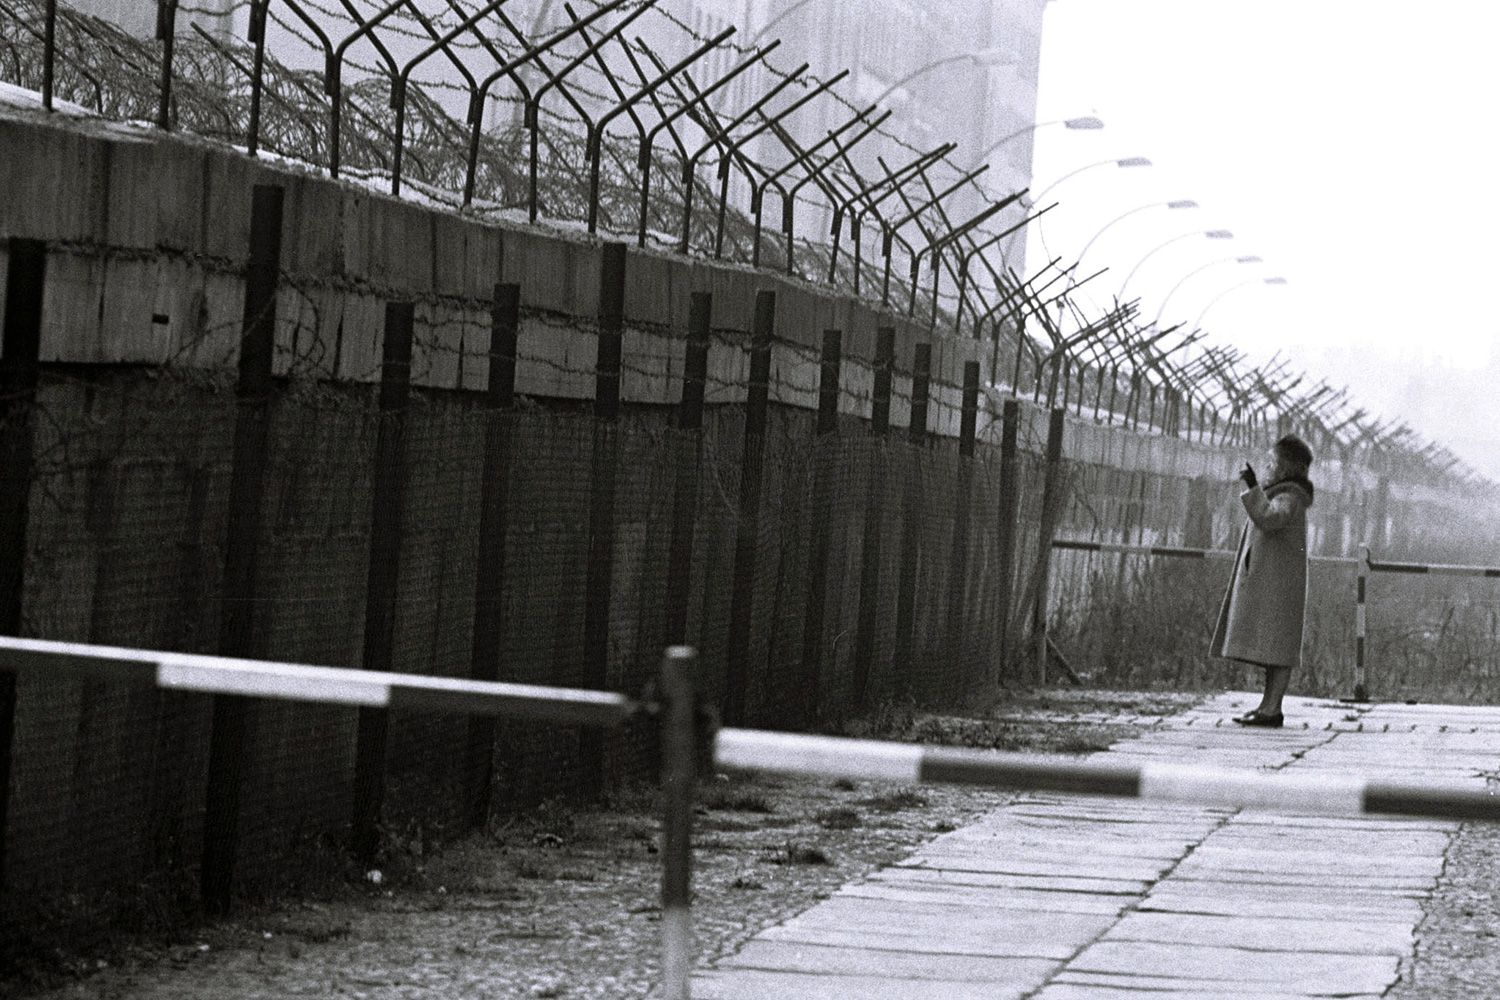 history outline of the berlin wall Emigration from east berlin to west berlin to escape communism and live a  better life under capitalism  overall summary  kennedy refused to do  anything about it so khrushchev had the berlin wall built 'to keep spies out.